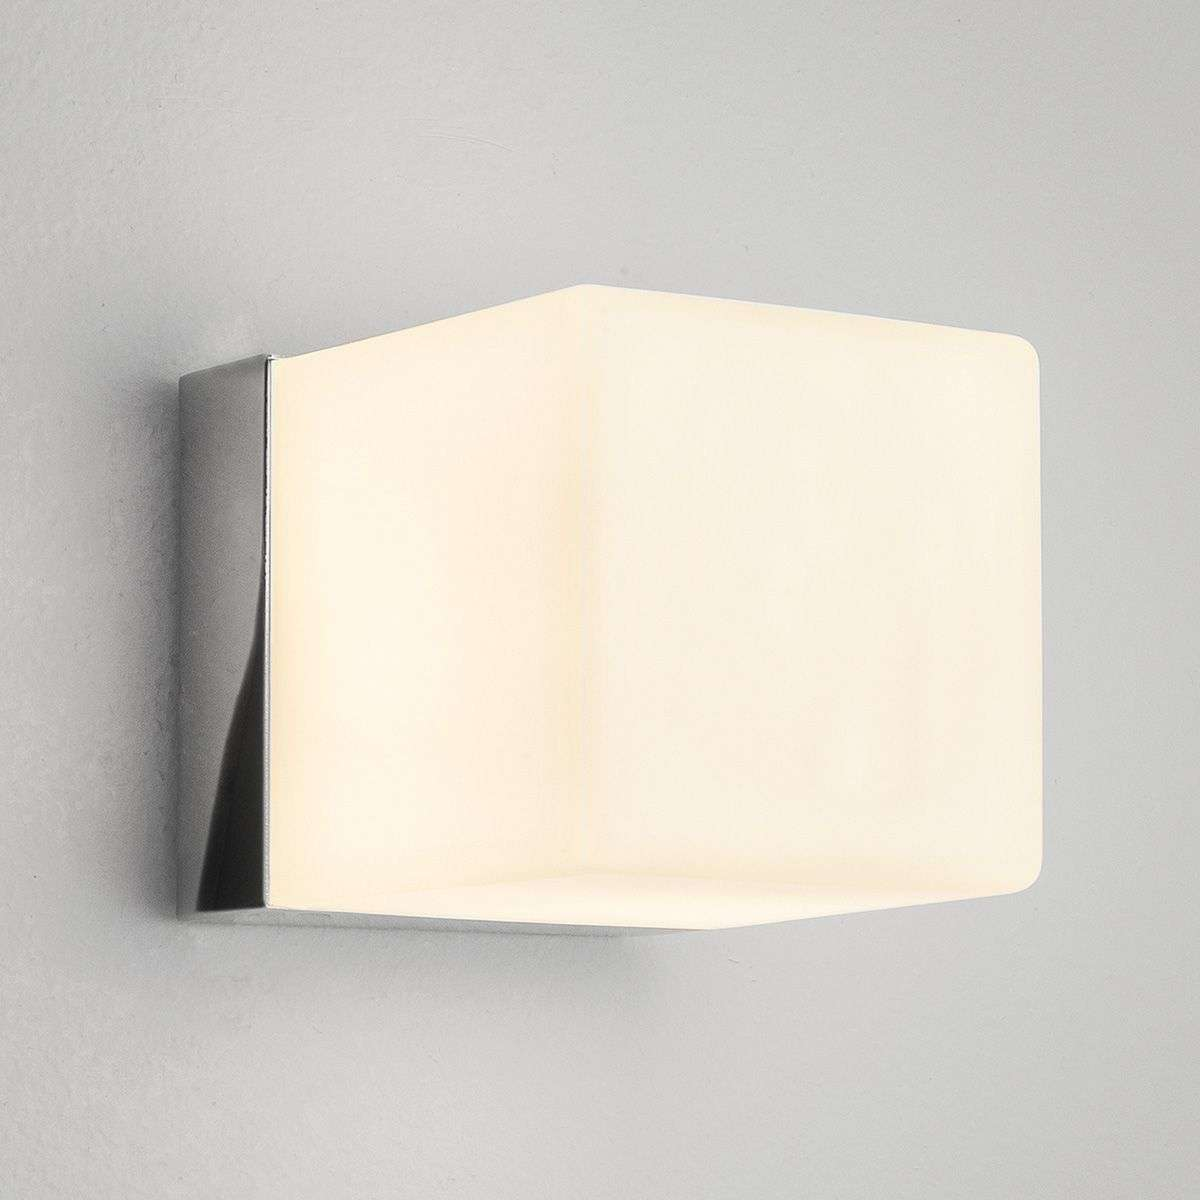 Cube Wall Light Simple-1020026-32